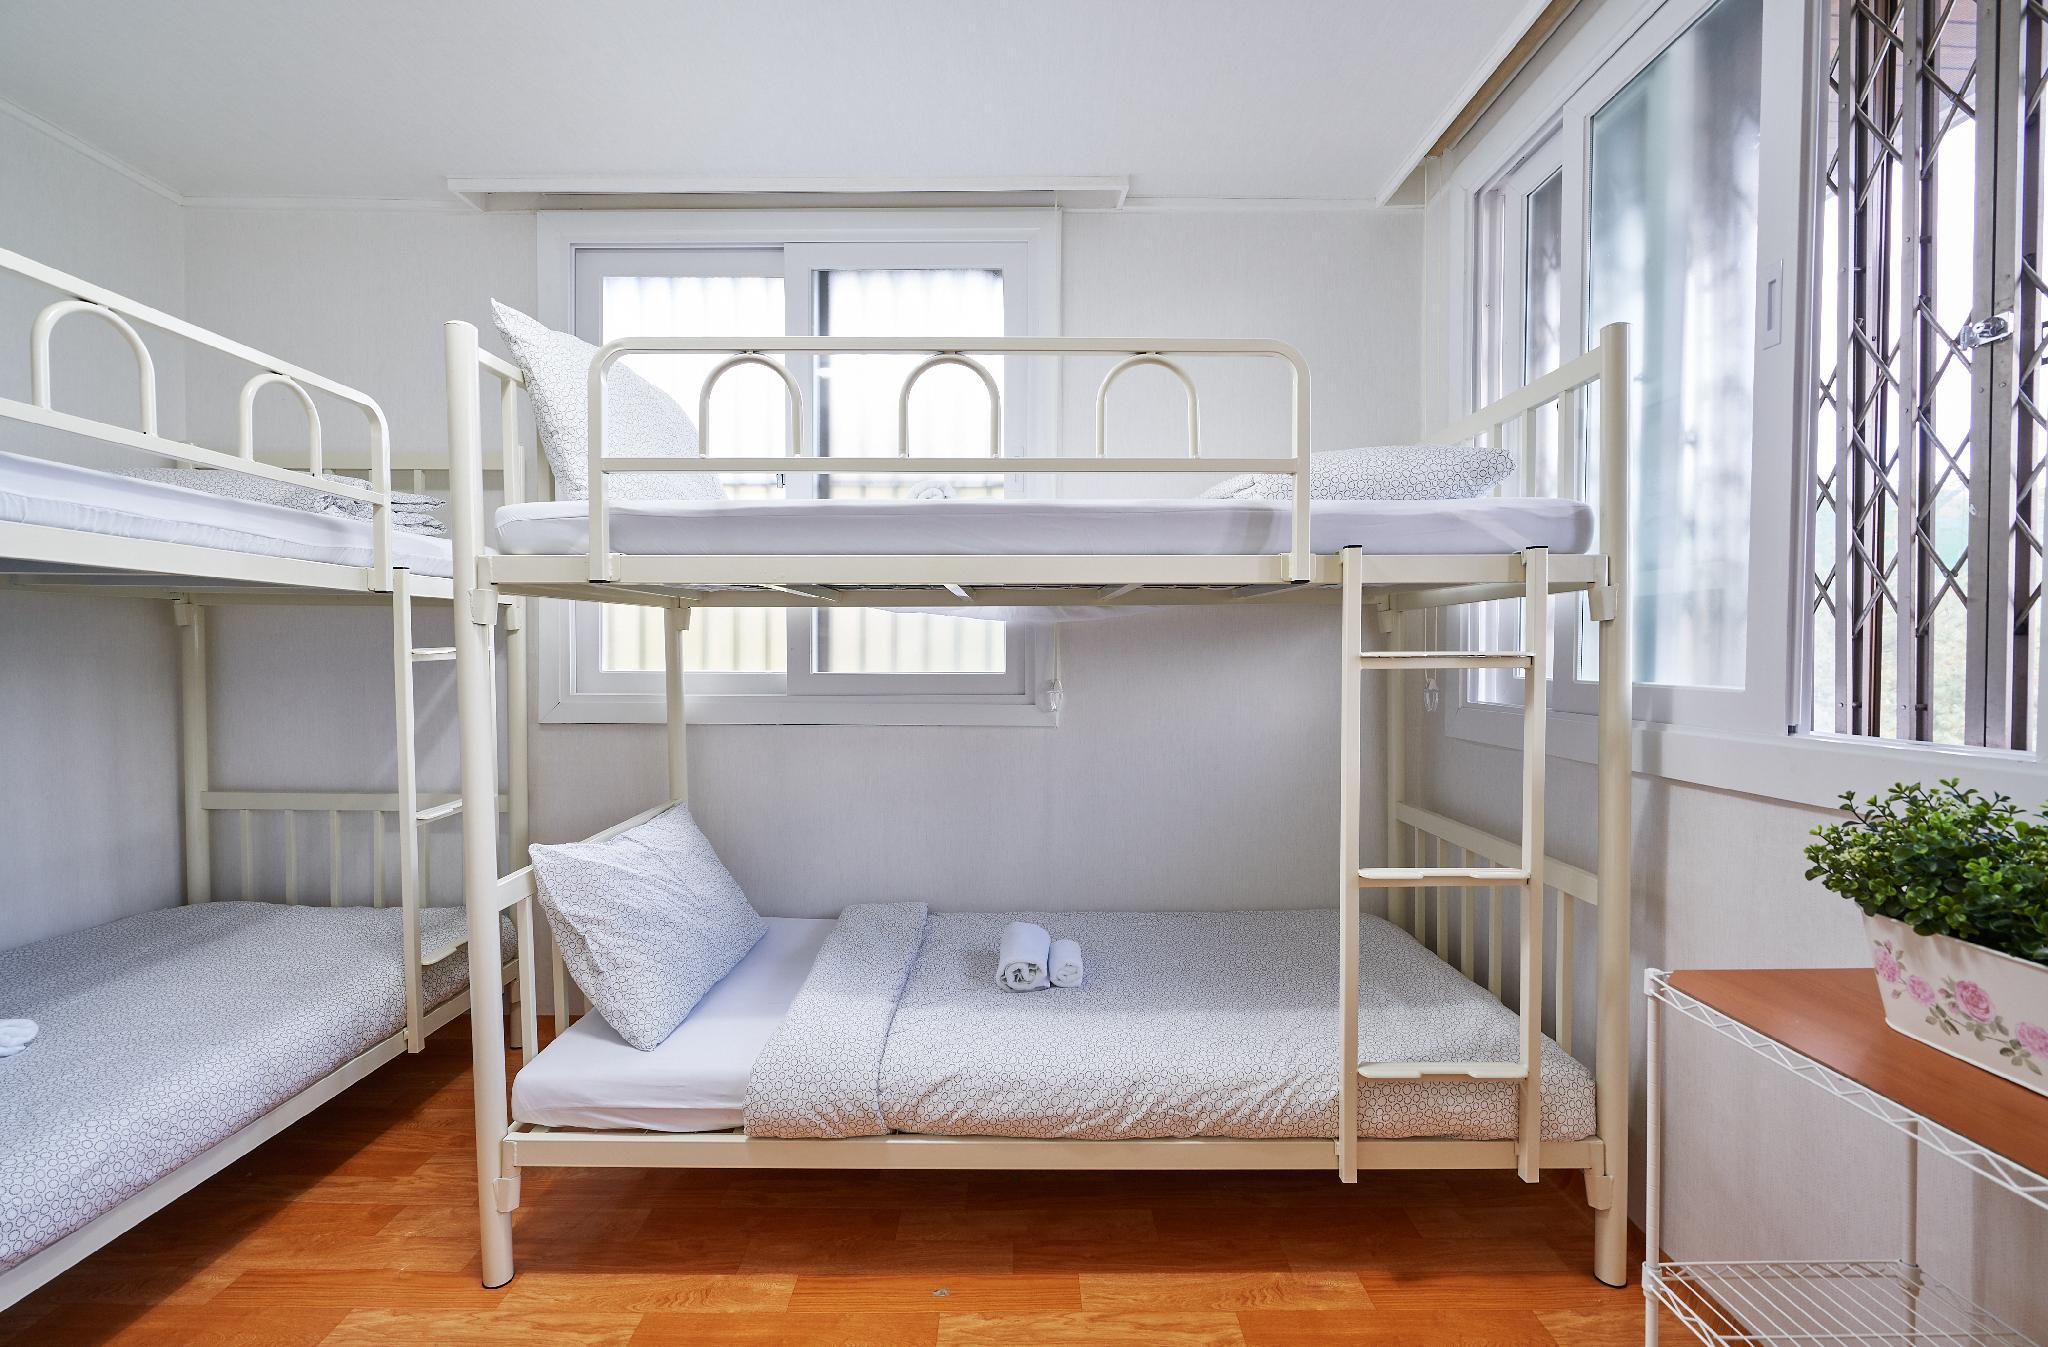 Seoul Best Stay 6 Bed Female Only Bunk Bed 2 Entire House Deals Photos Reviews